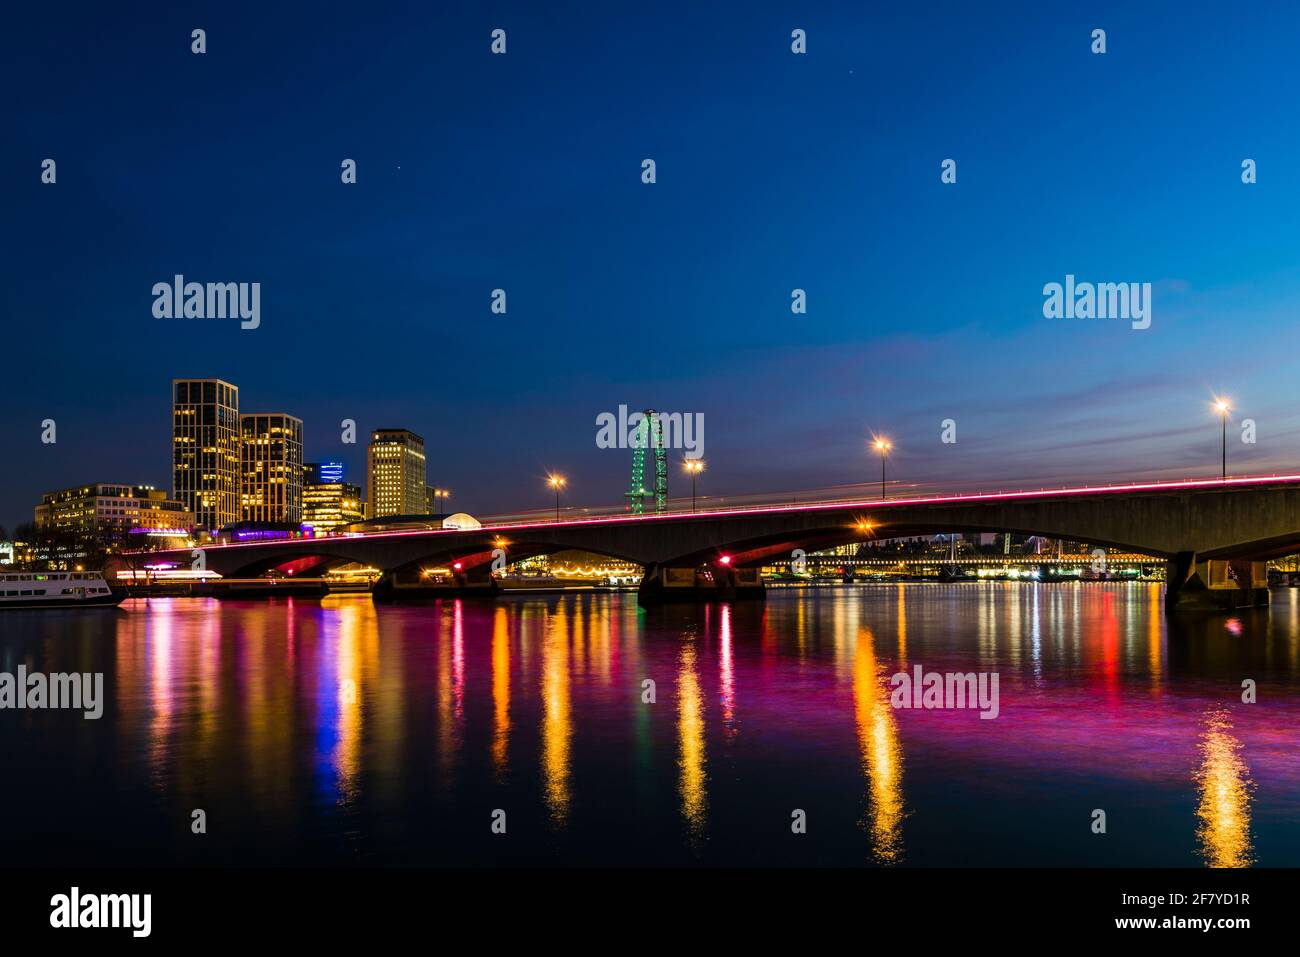 Early evening view of the lights on Waterloo Bridge over the River Thames, London, UK Stock Photo